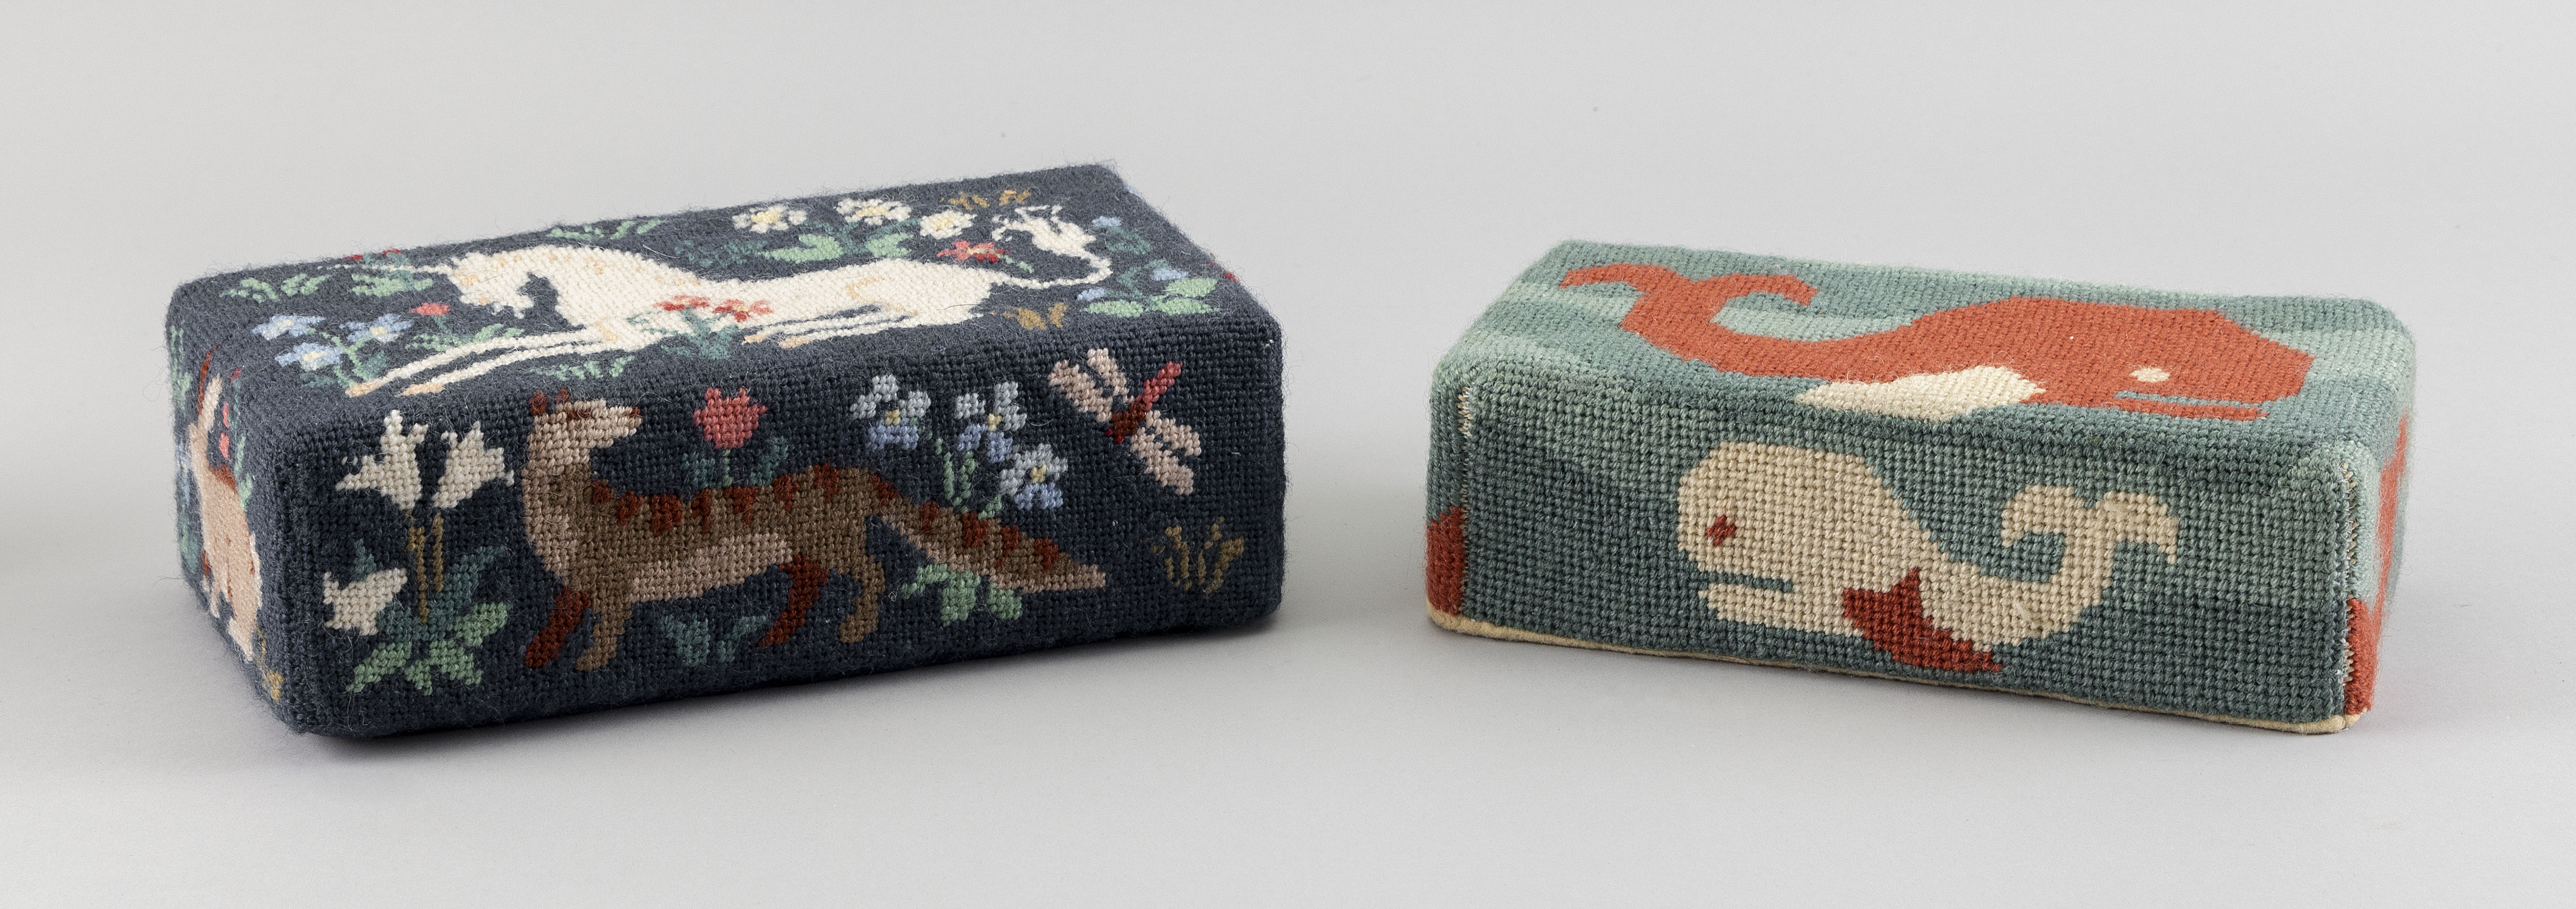 """TWO NEEDLEWORK DOORSTOPS 20th Century Heights 2.5"""" and 3"""". Lengths 8"""" and 8.75""""."""